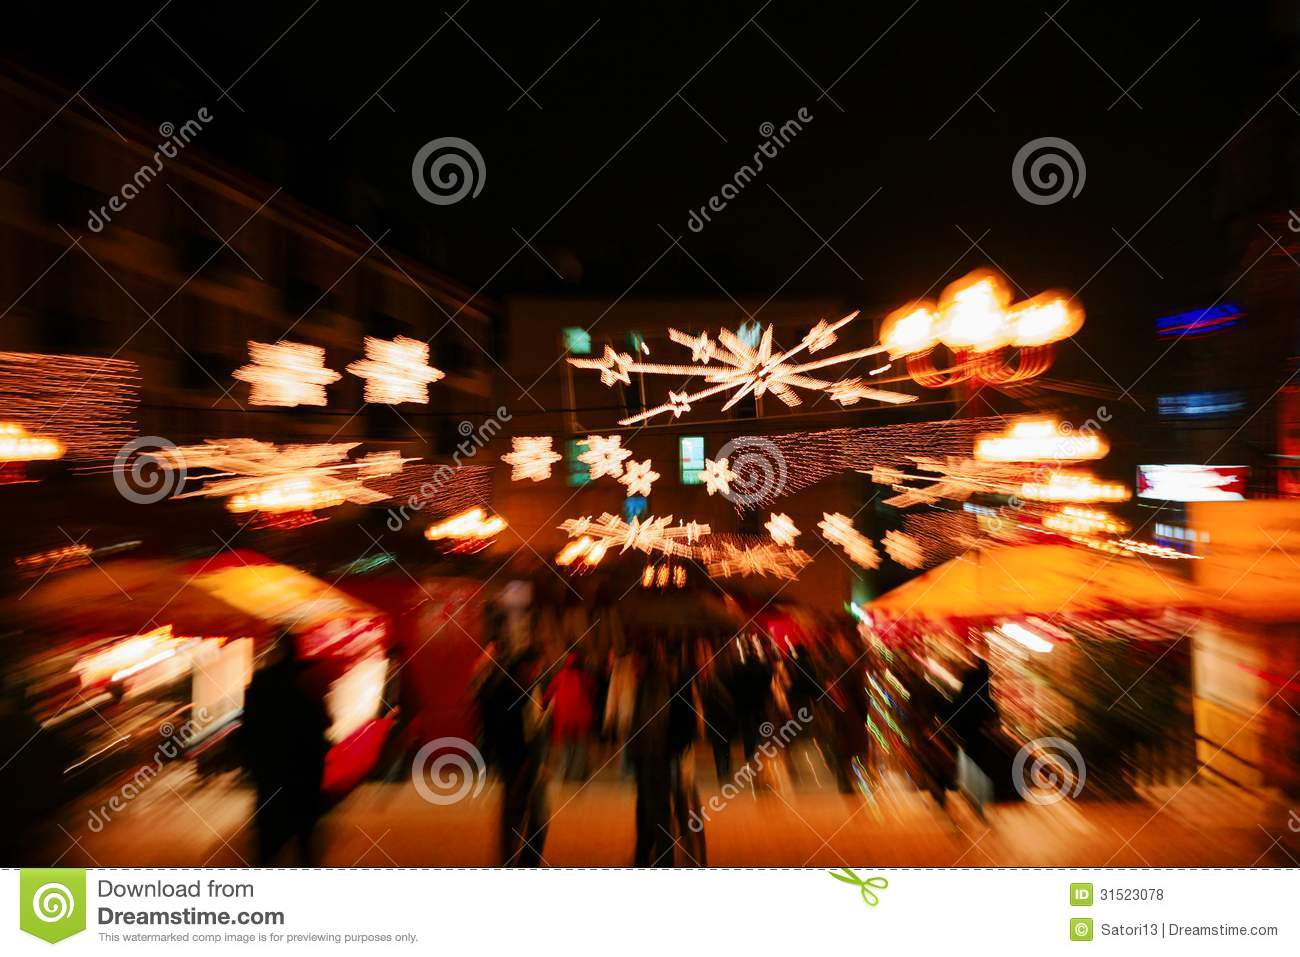 Blurred People Royalty Free Stock Photos - Image: 31523078